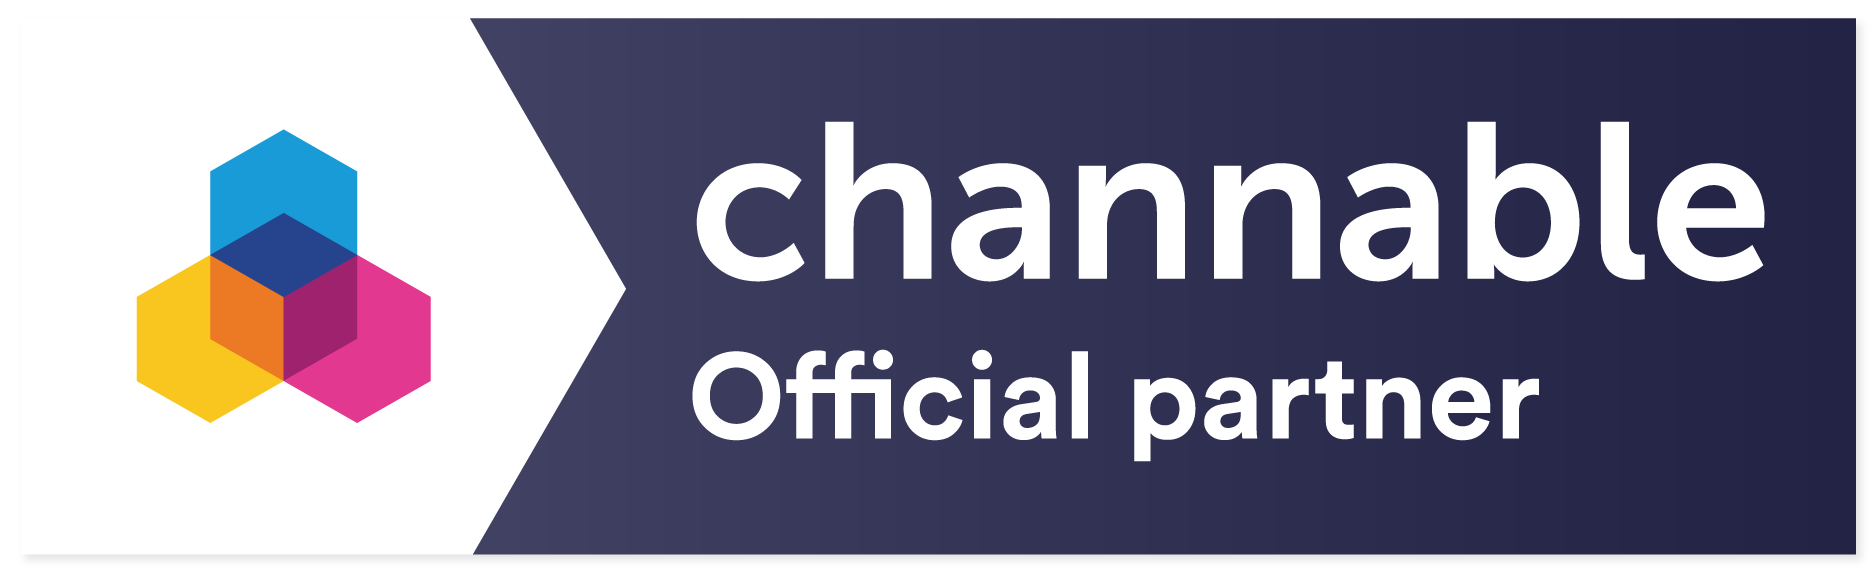 Channable Certified Partner 2019-2021